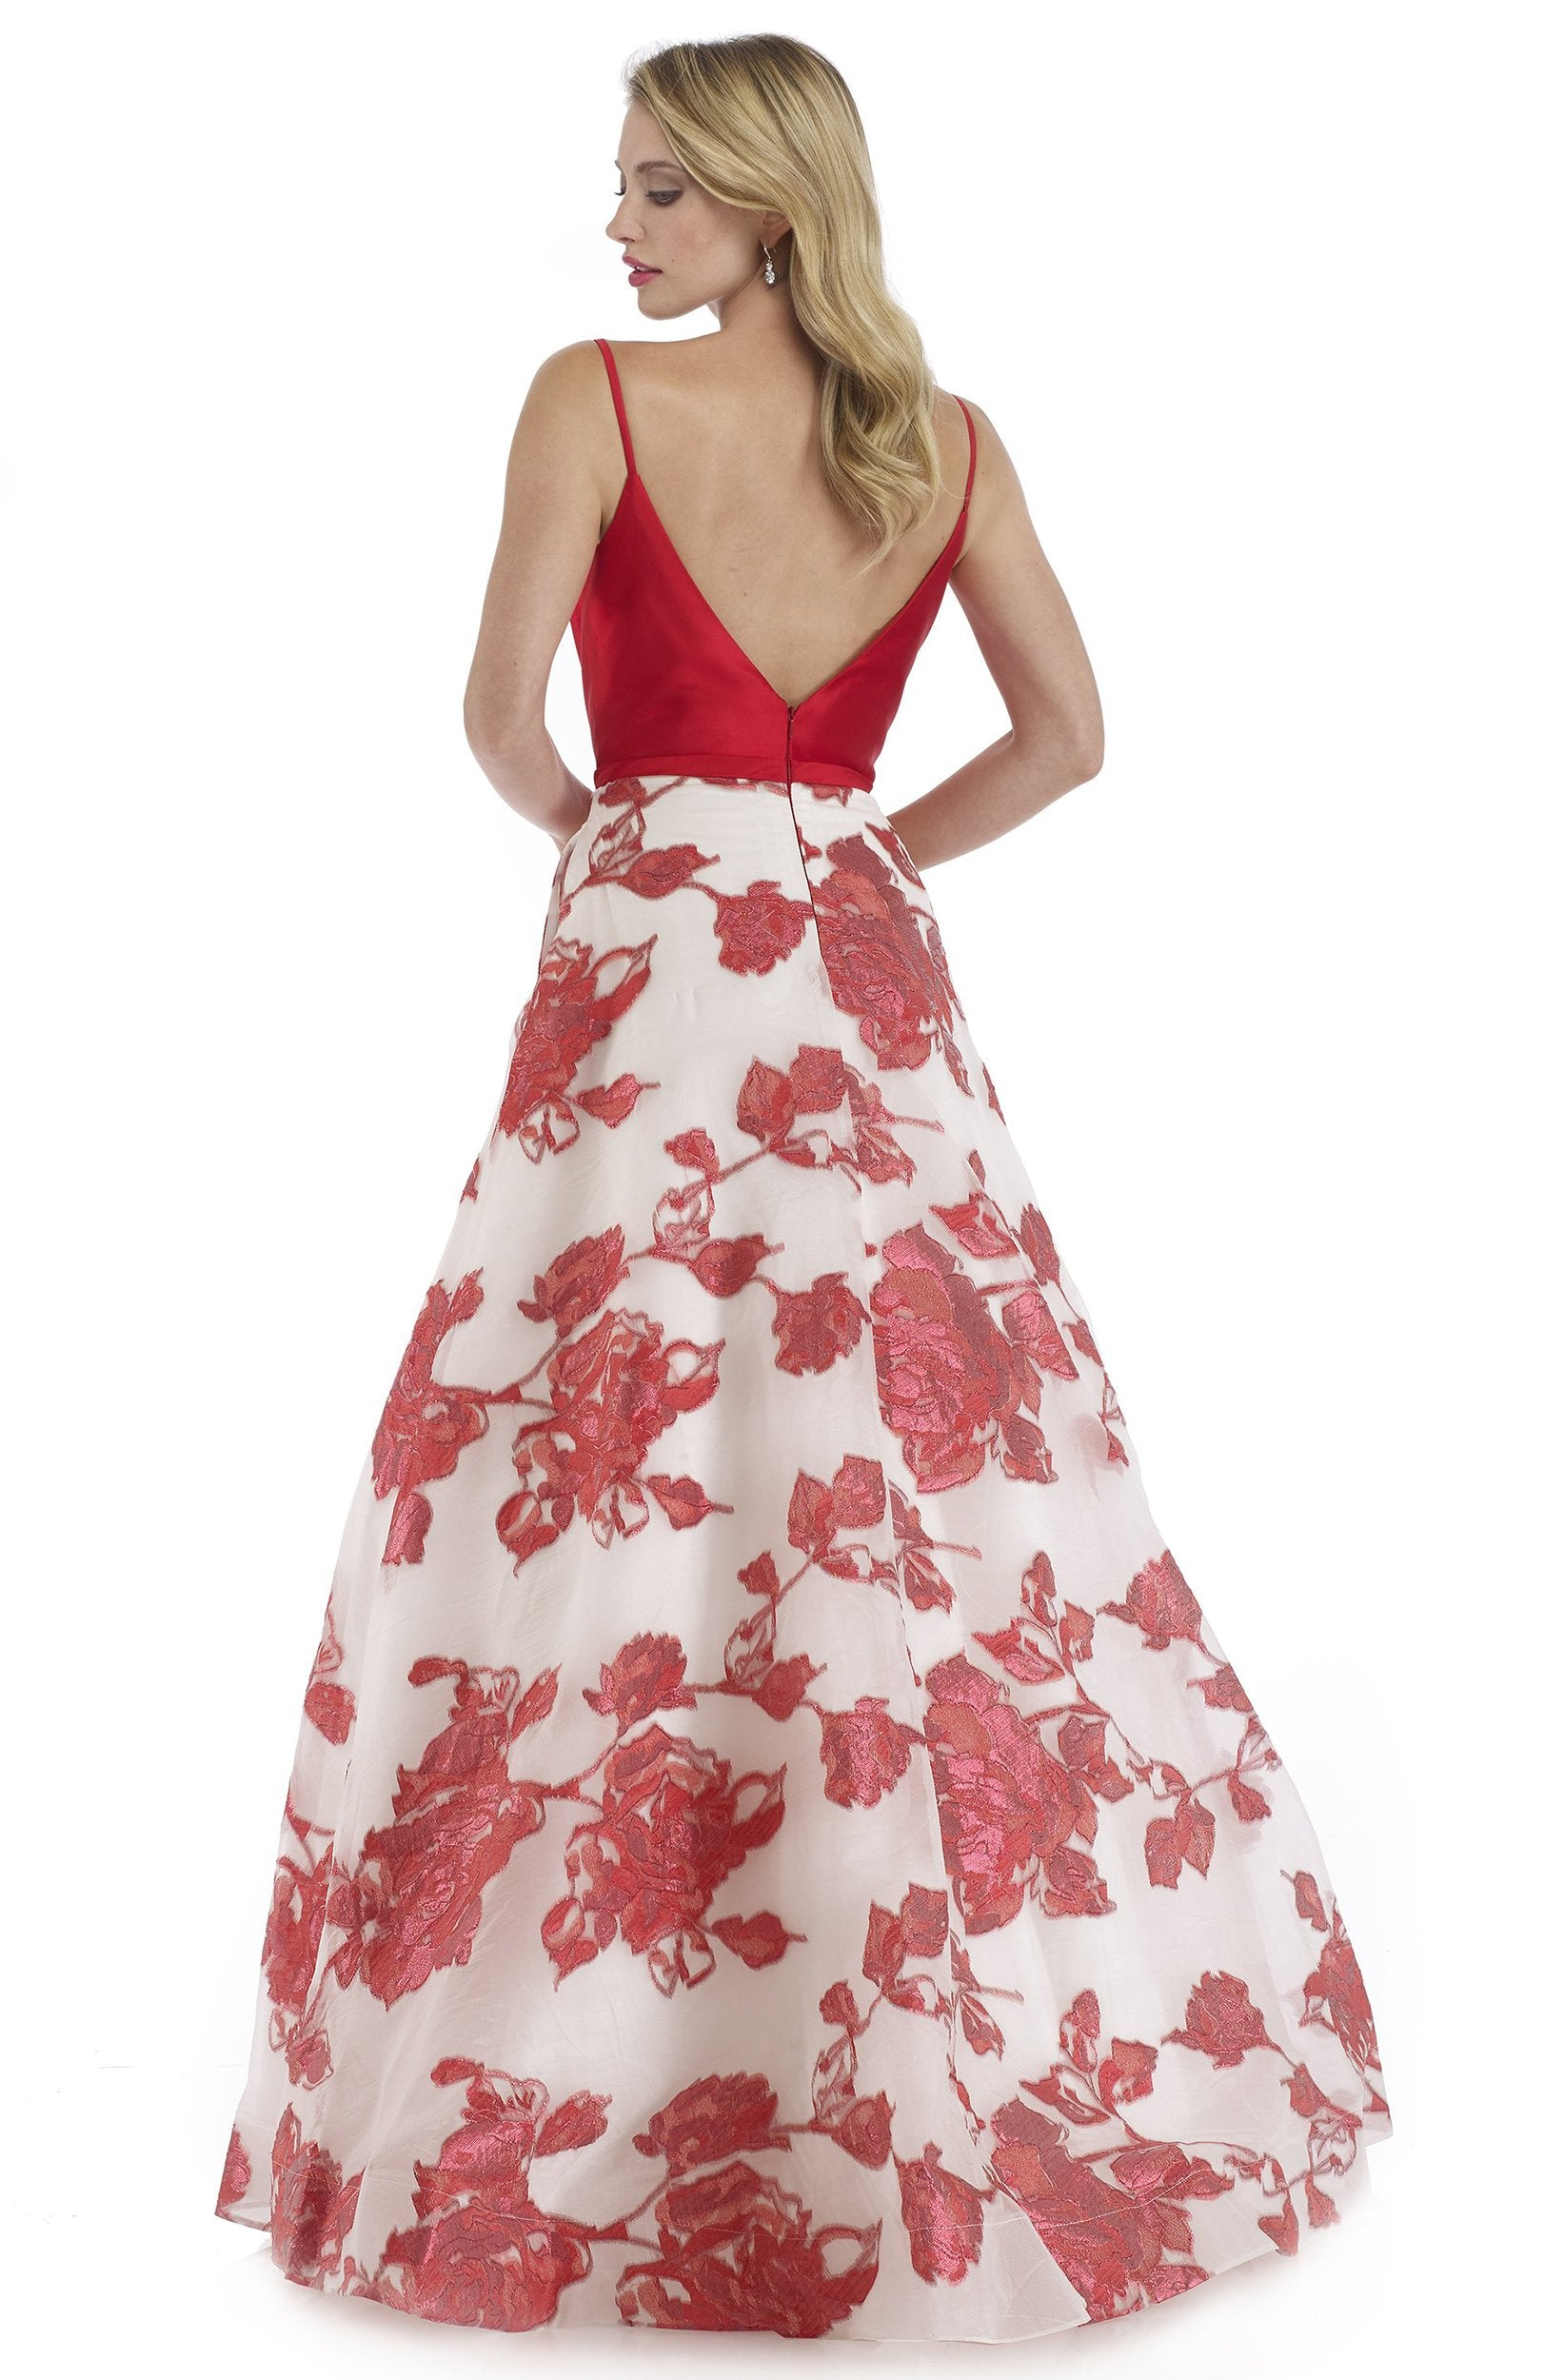 Morrell Maxie - 16090 Mikado Deep V-neck Brocade A-line Dress in Red and White